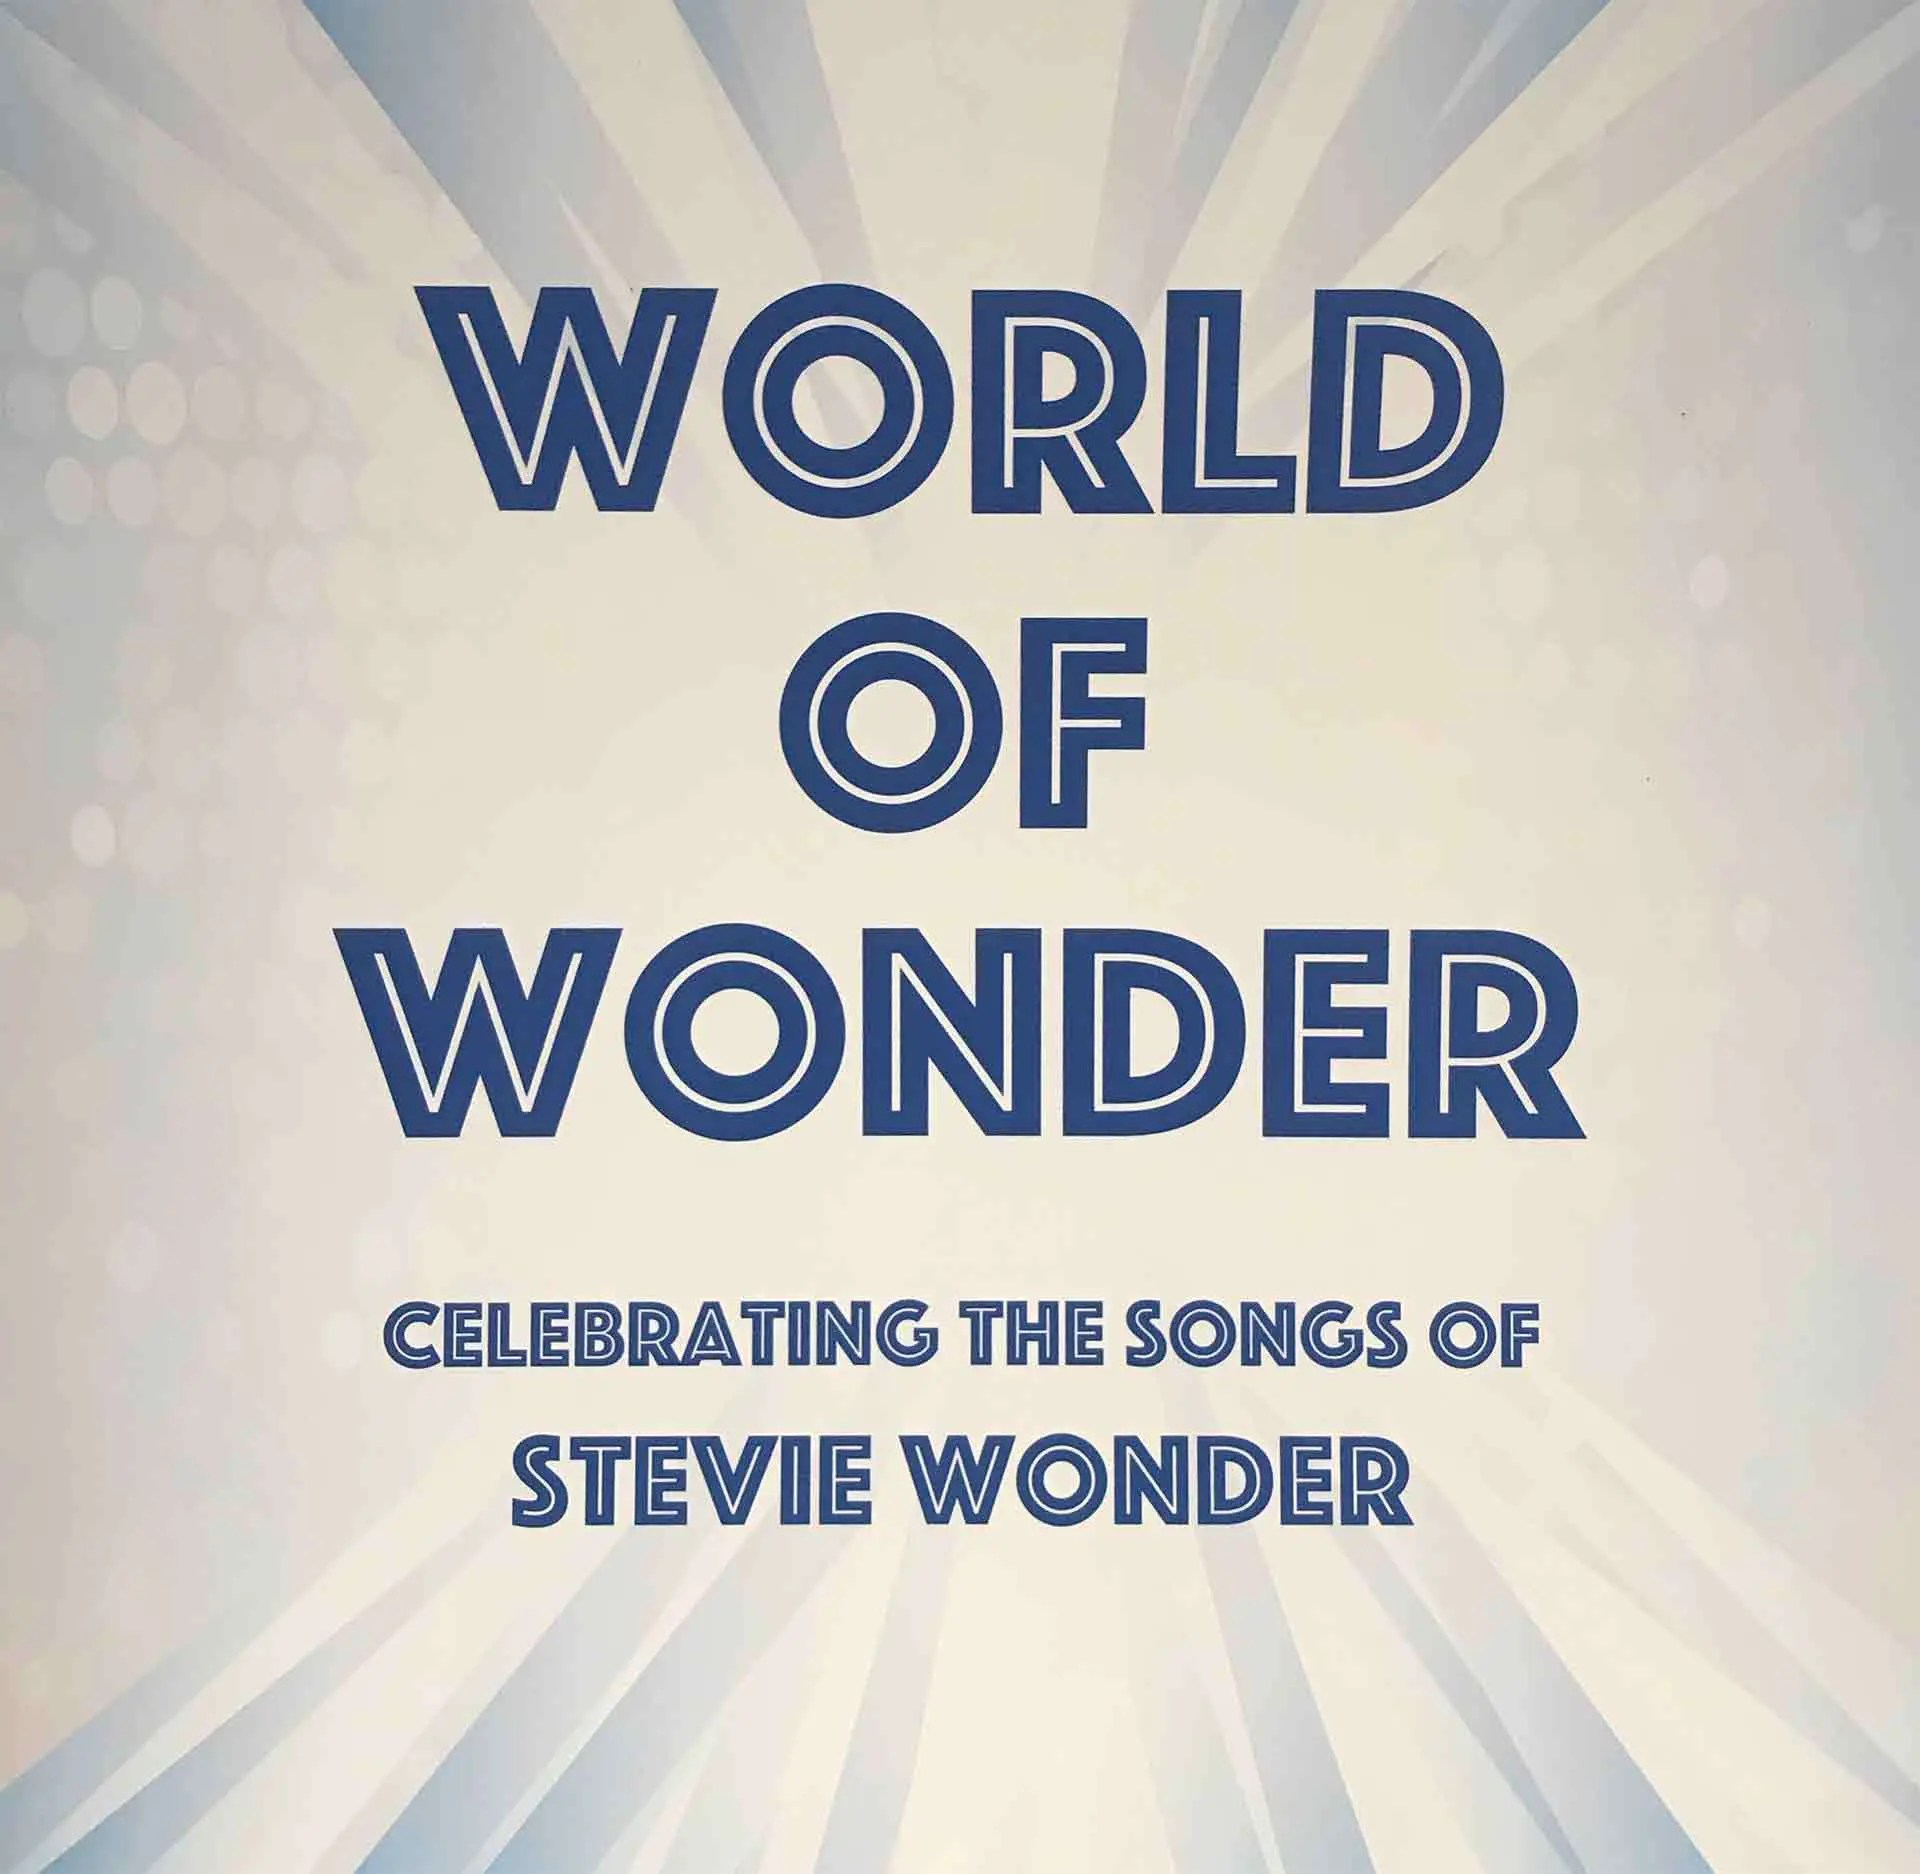 World-of-Wonder-Poster